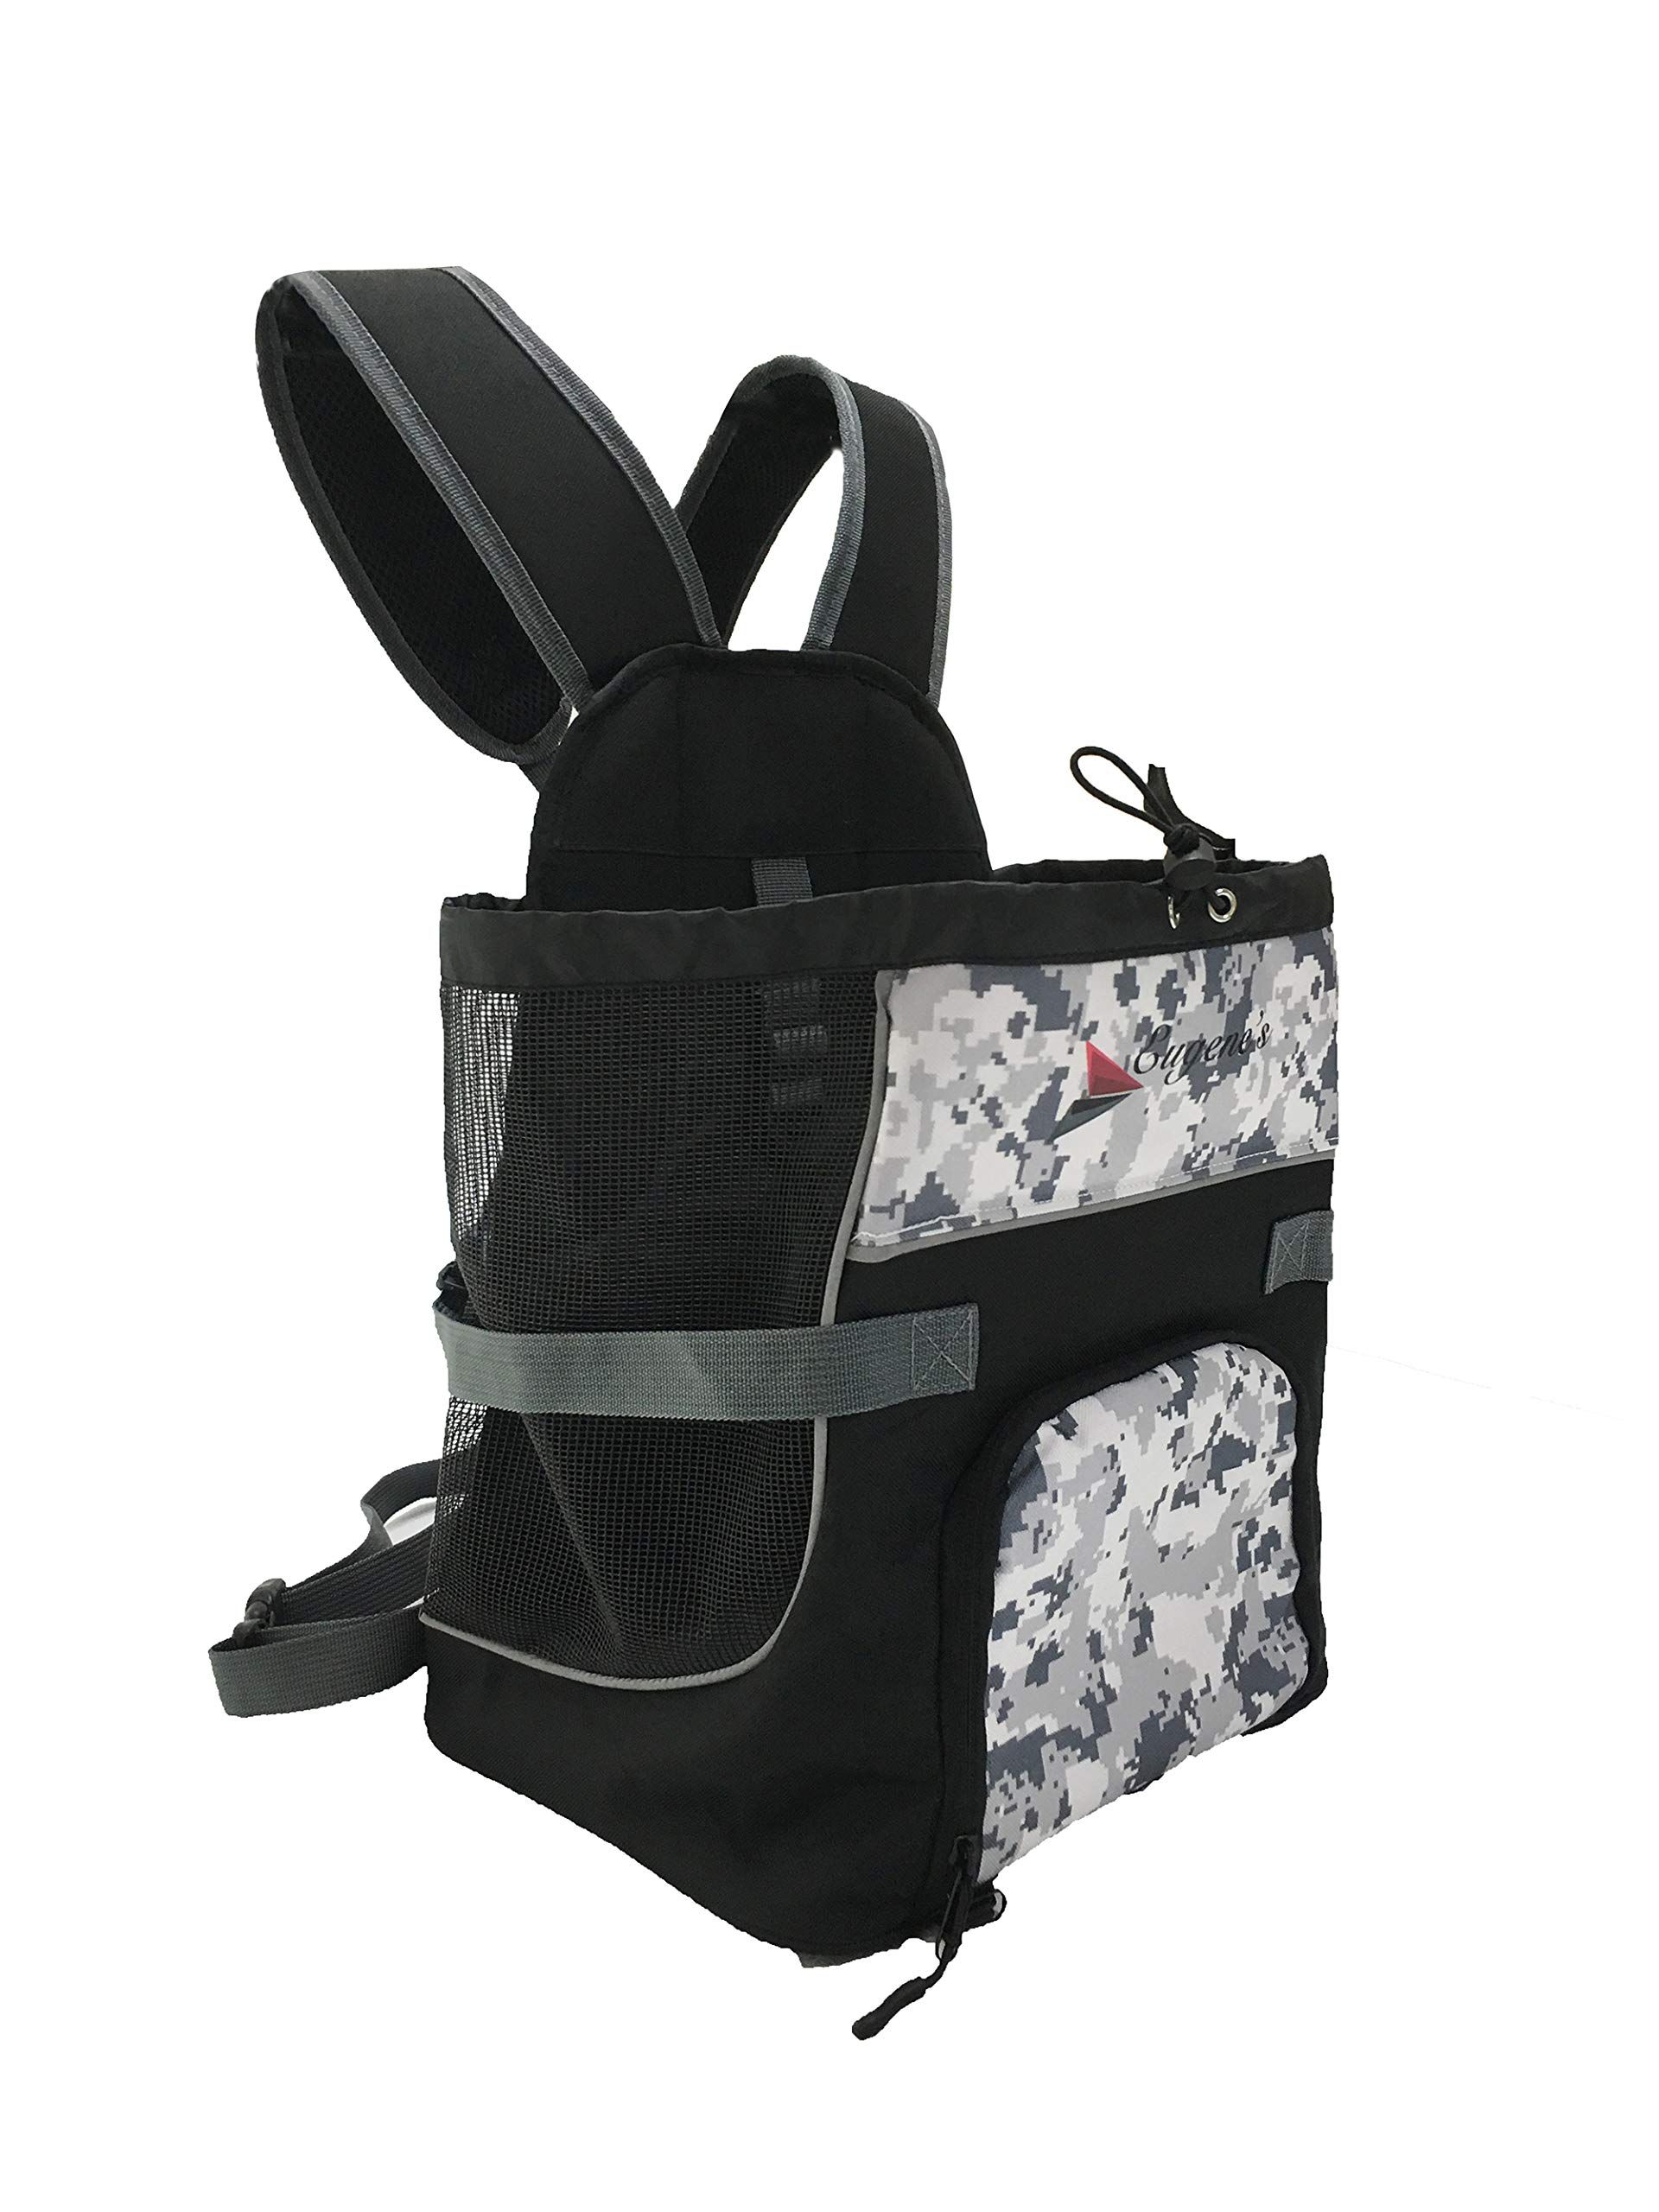 Eugene's Front Dog Cat Pet Carrier, Dog Backpack Bag Free Your Hands. Use as: Dog Carrier, Cat Carrier, Carrier for Small Pets. New Generation of Dog Carriers. for Your Pets up to 16 lbs. Khaki